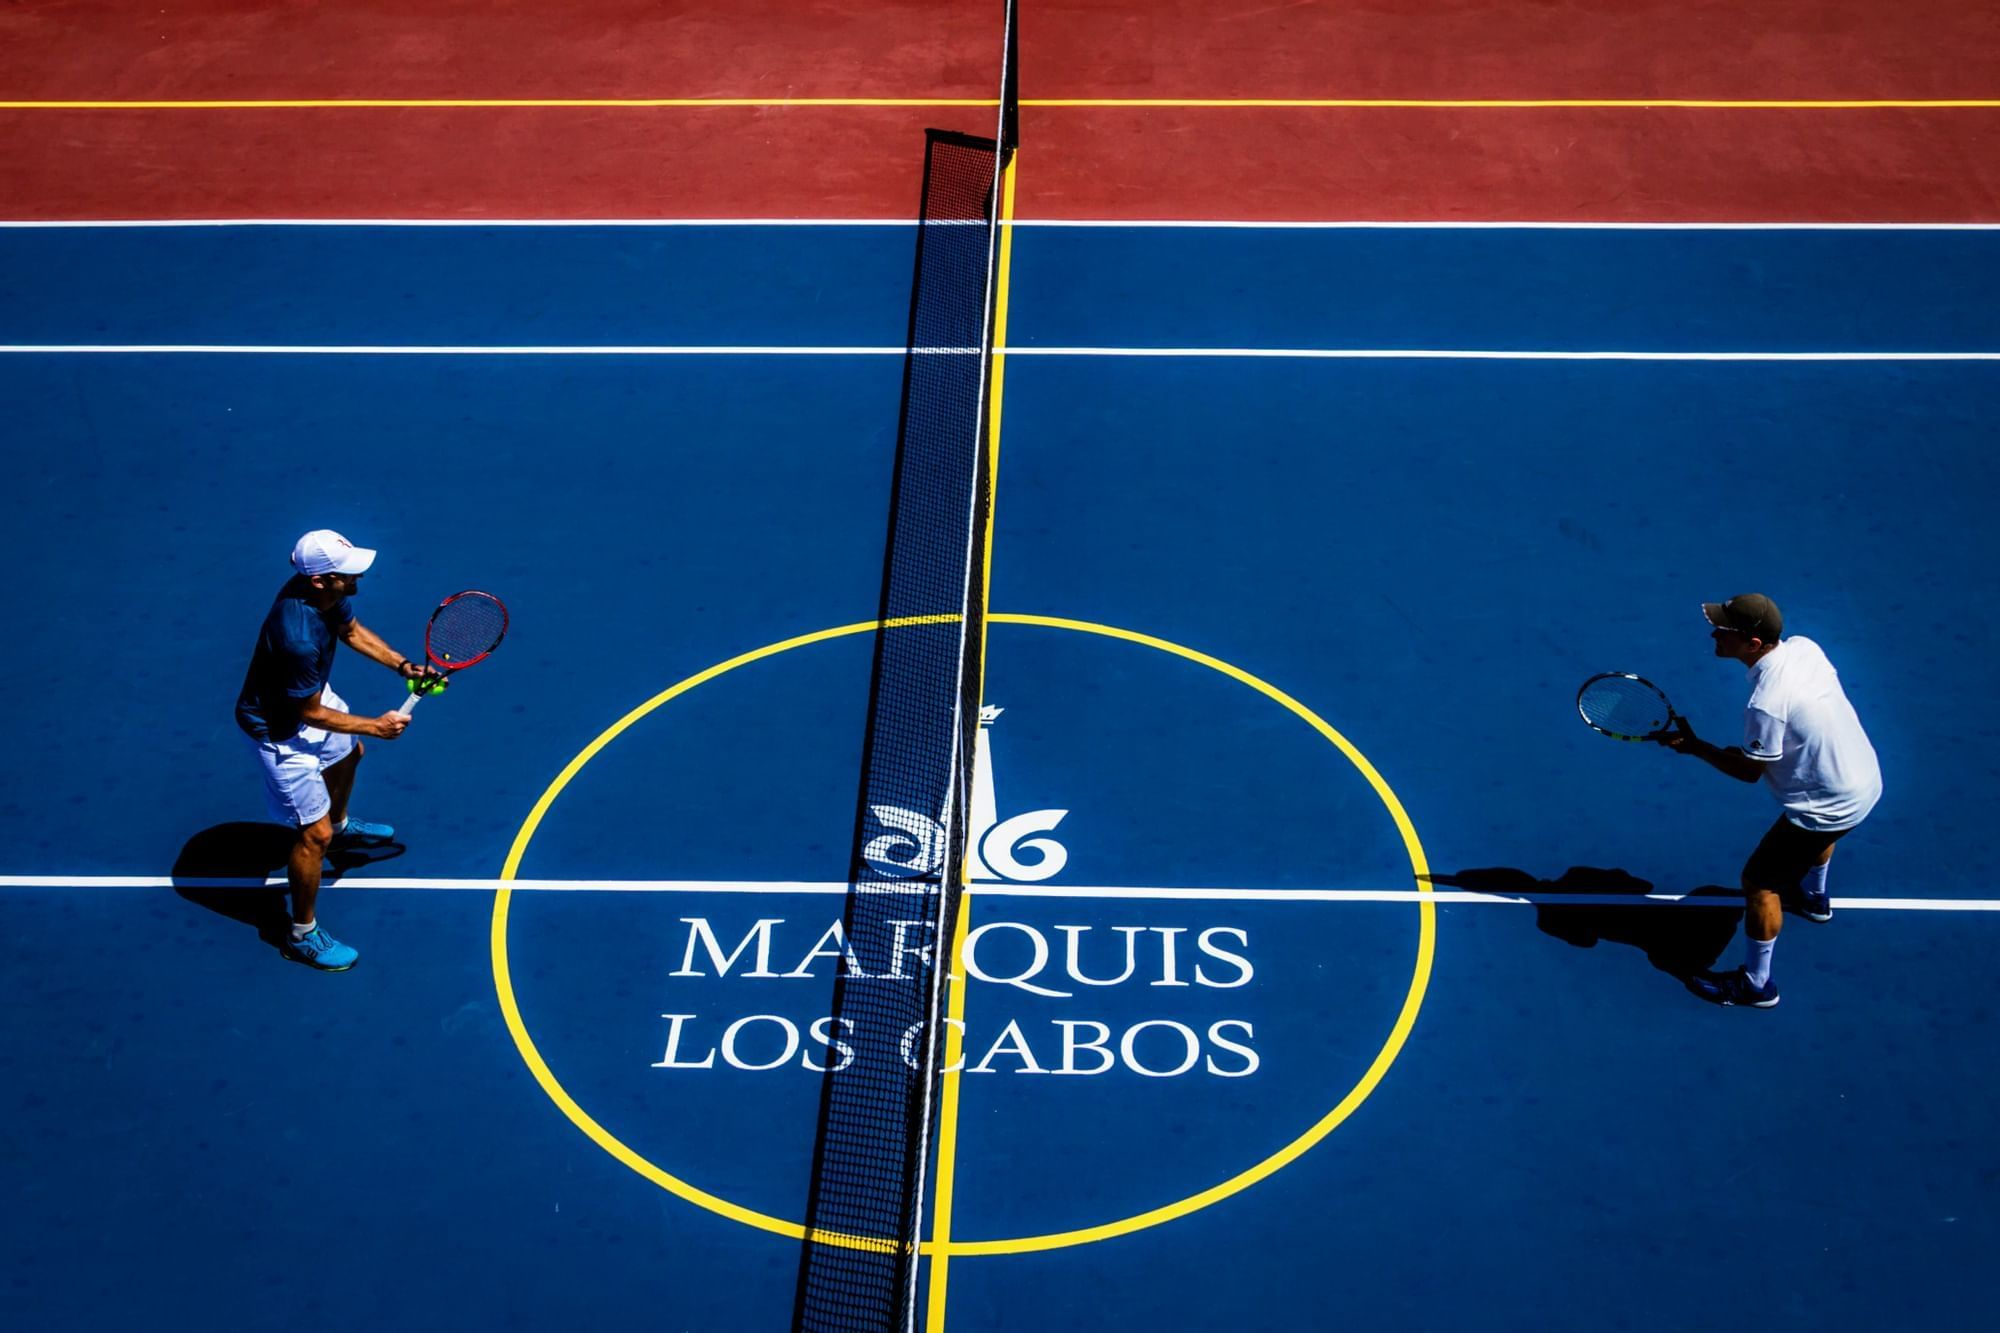 Two people playing tenis - Marquis Los Cabos